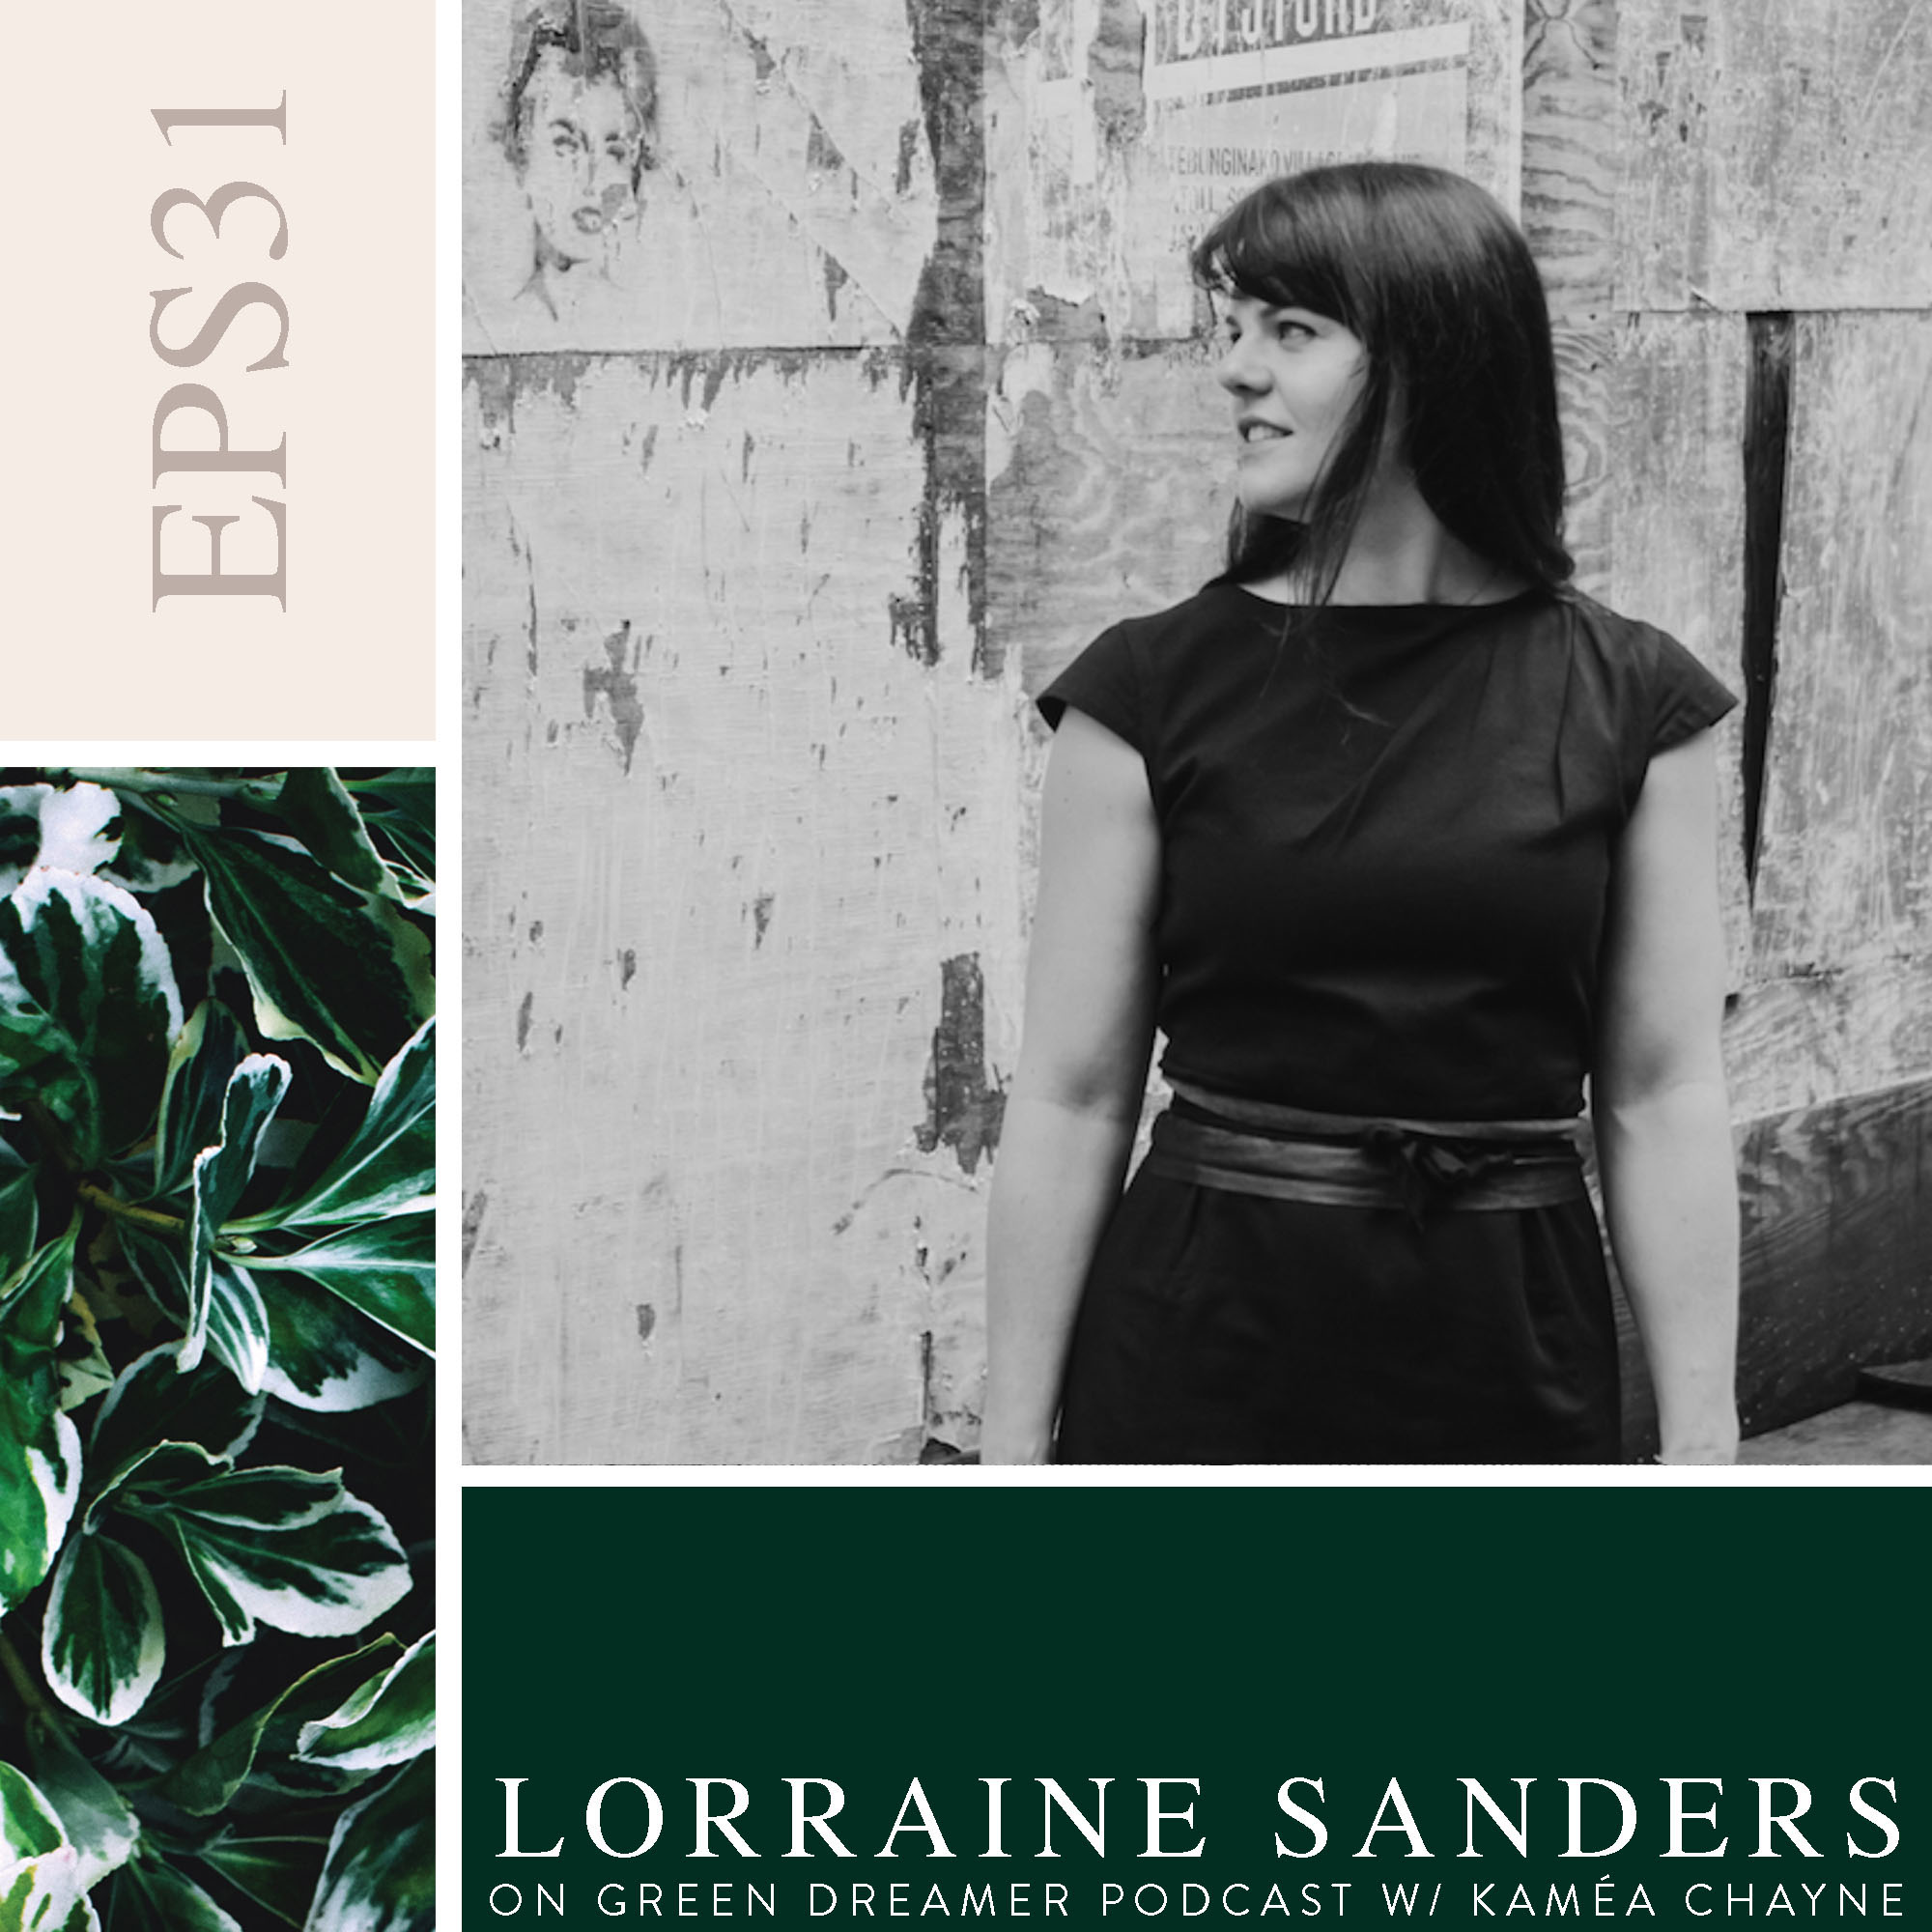 31) BW Lorraine-Sanders-of-Spirit-of-608-talks-sustainability-on-Green-Dreamer-Podcast-with-Kaméa-Chayne.jpg